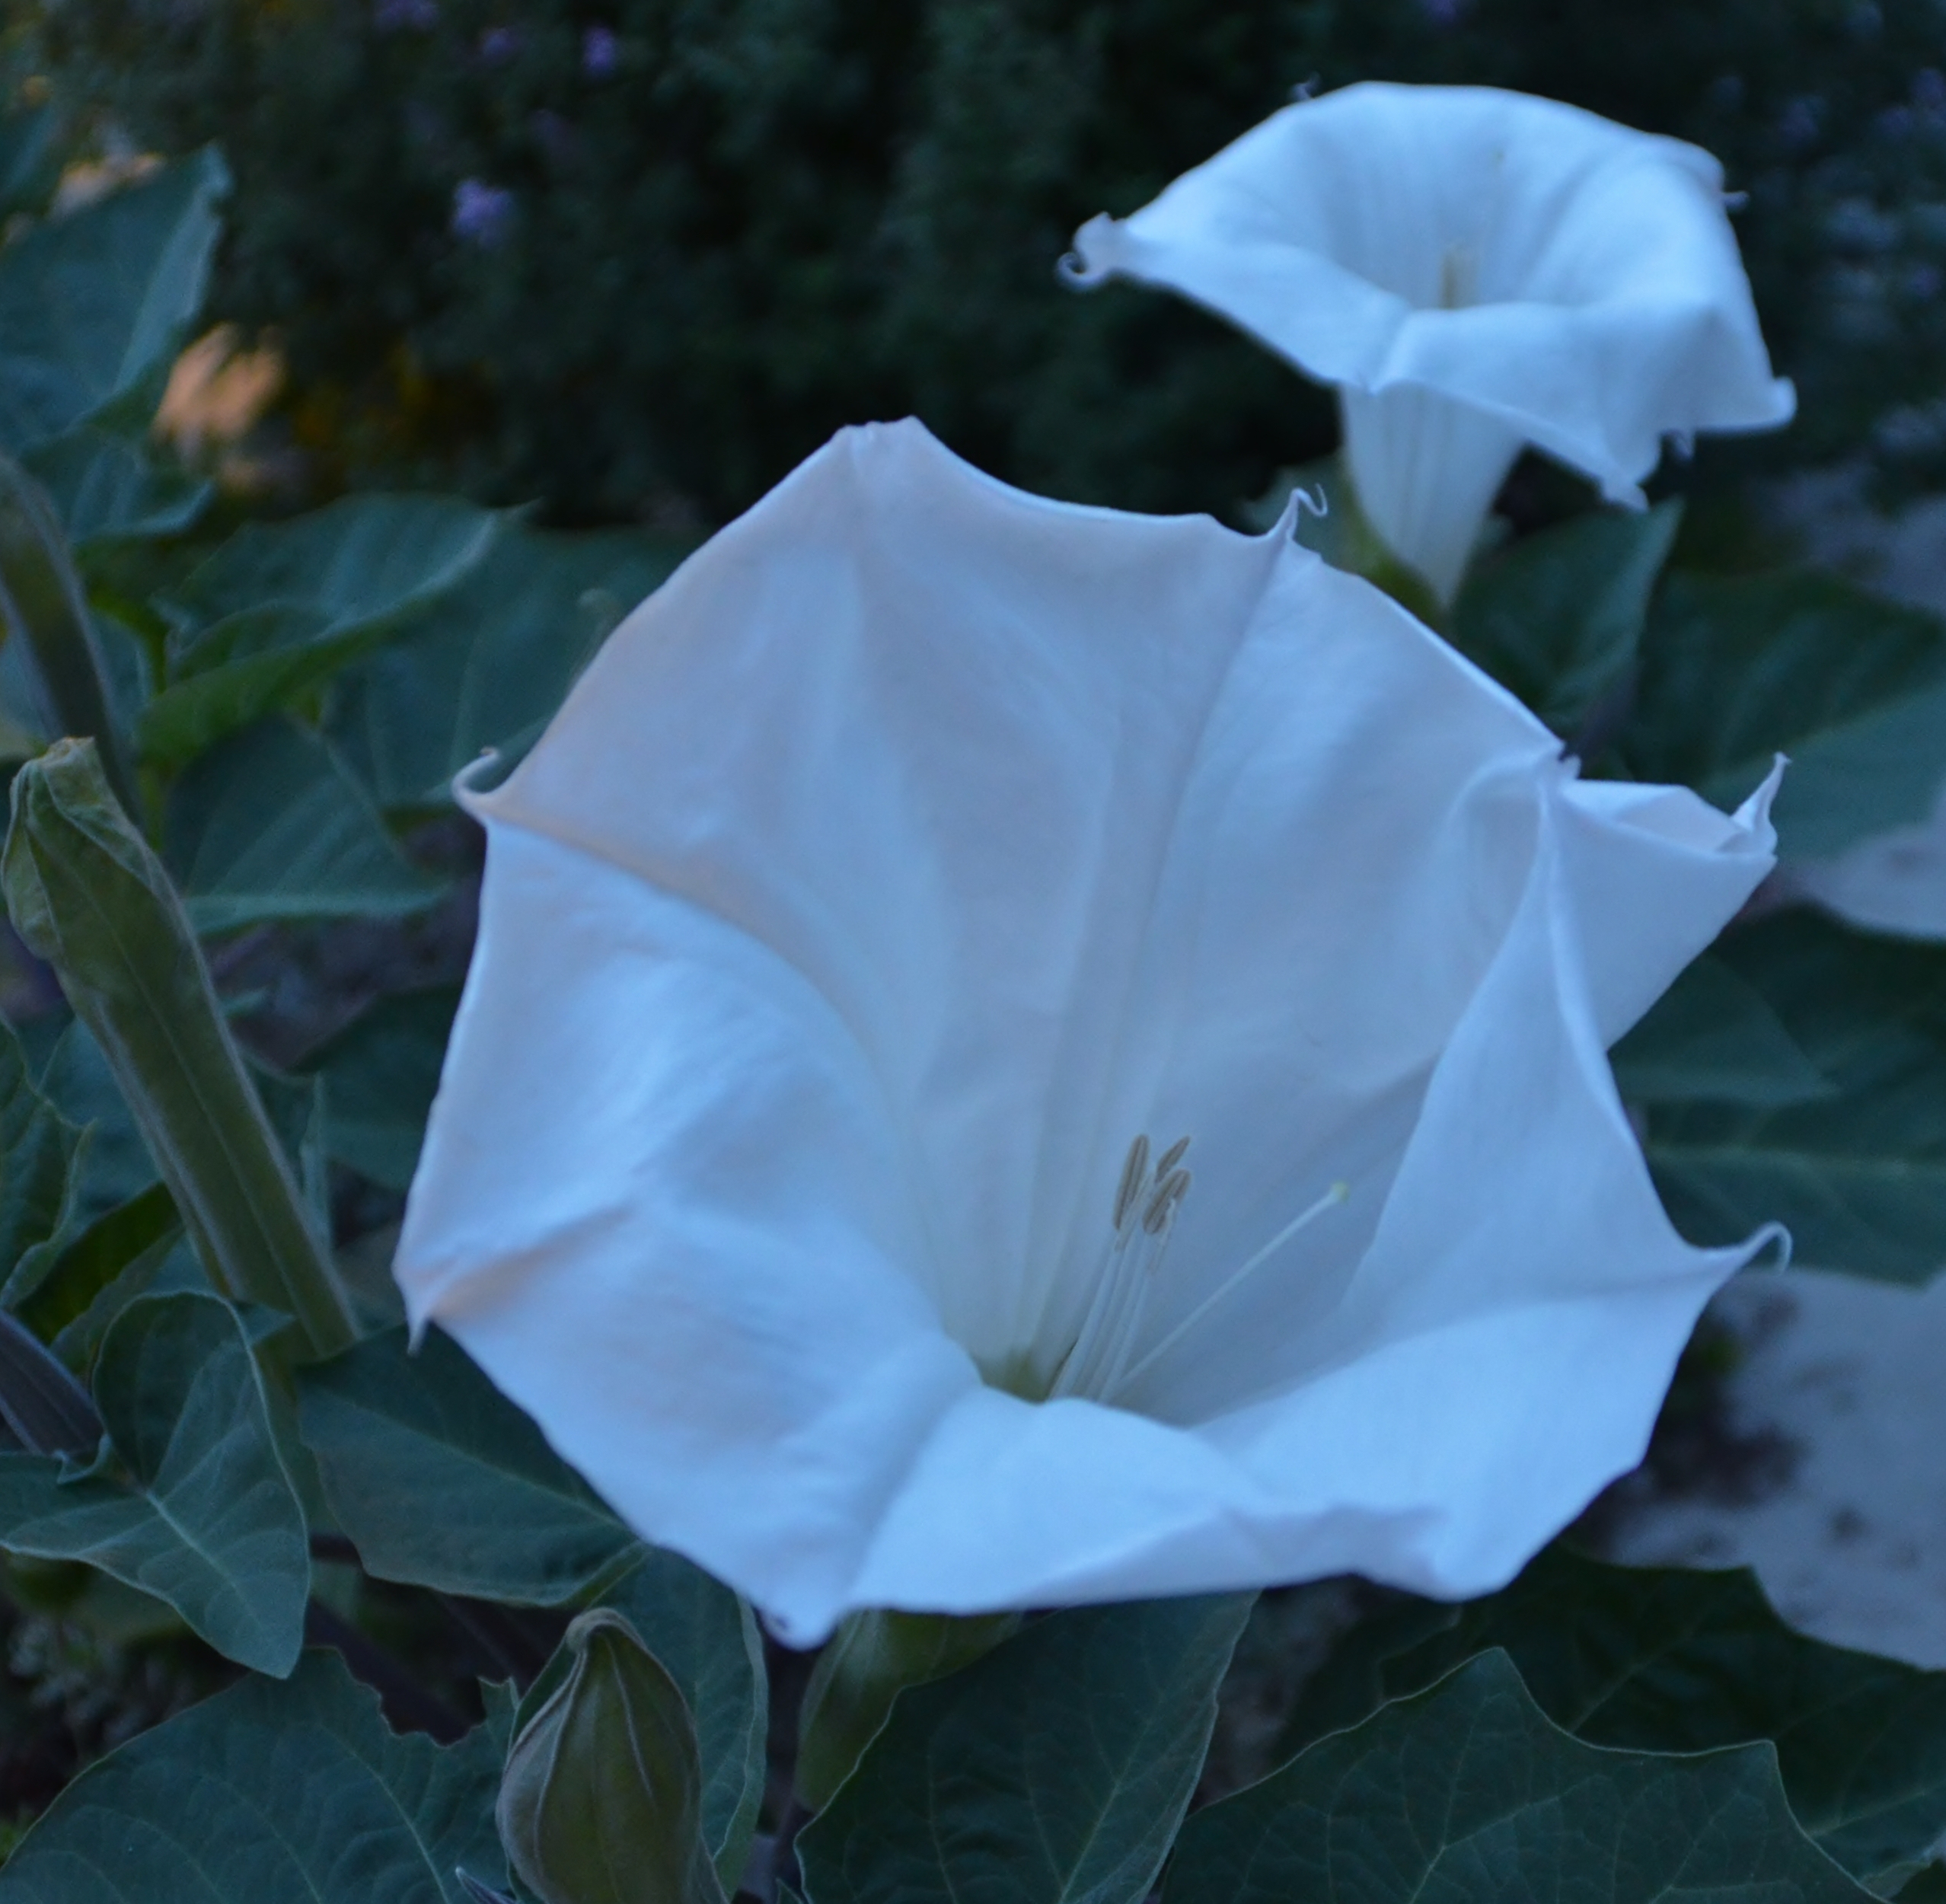 Night Flowers – A New Day Living Life Almost Gracefully